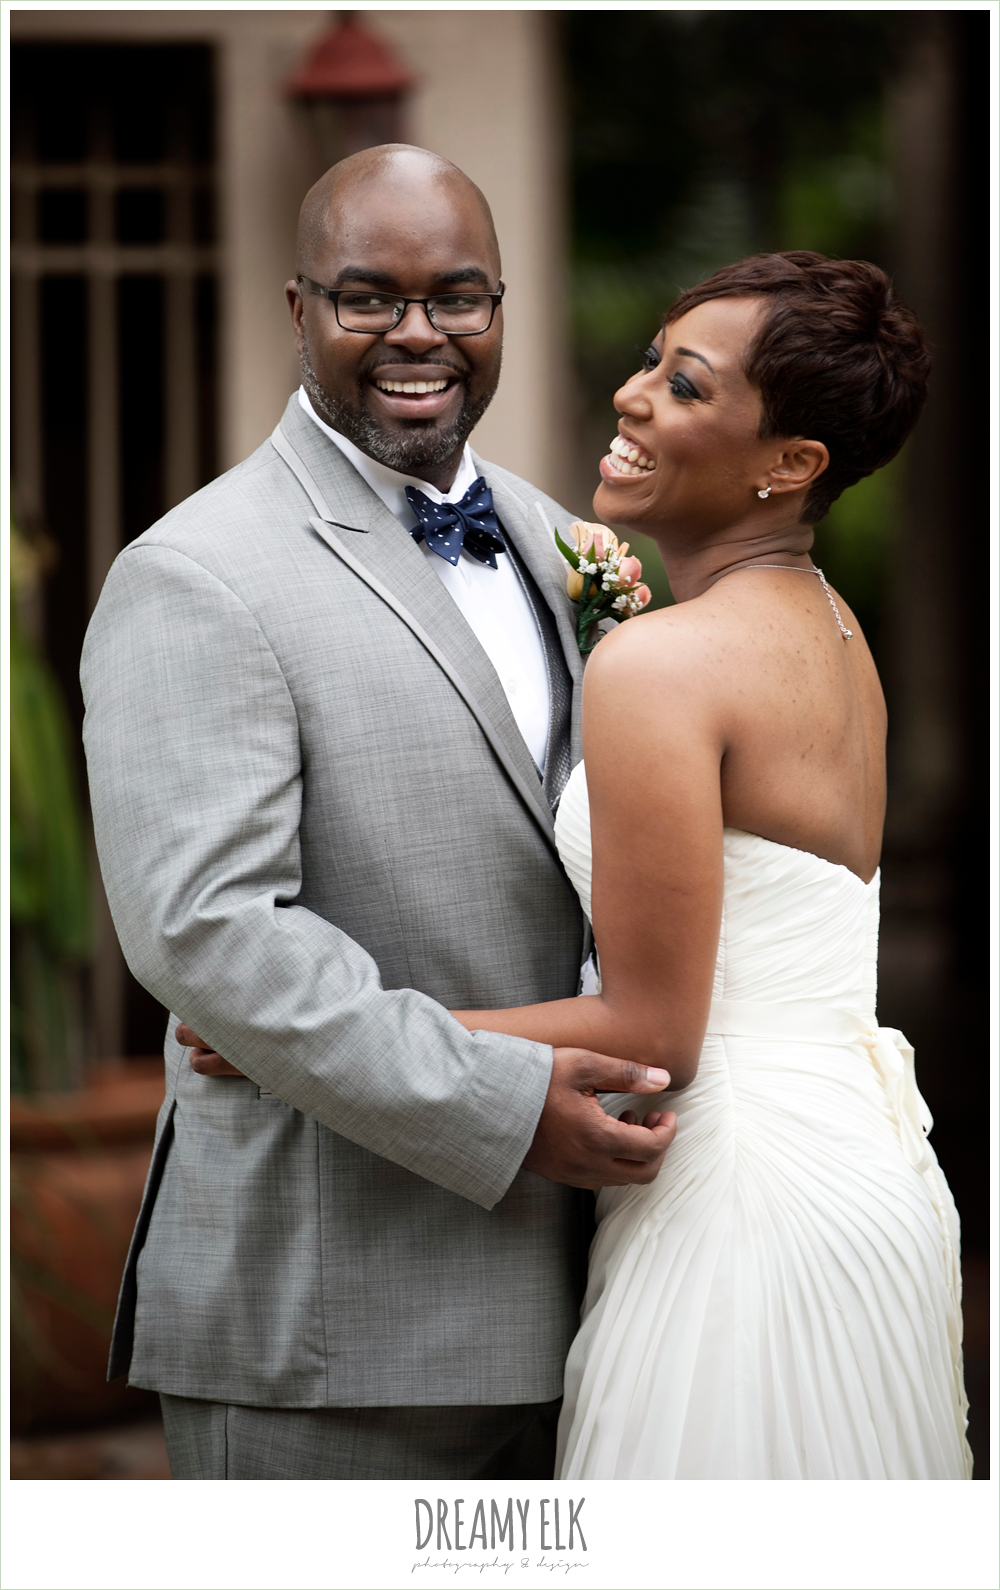 gray suit, navy bow tie, strapless wedding dress, northwest forest conference center, dreamy elk photography and design